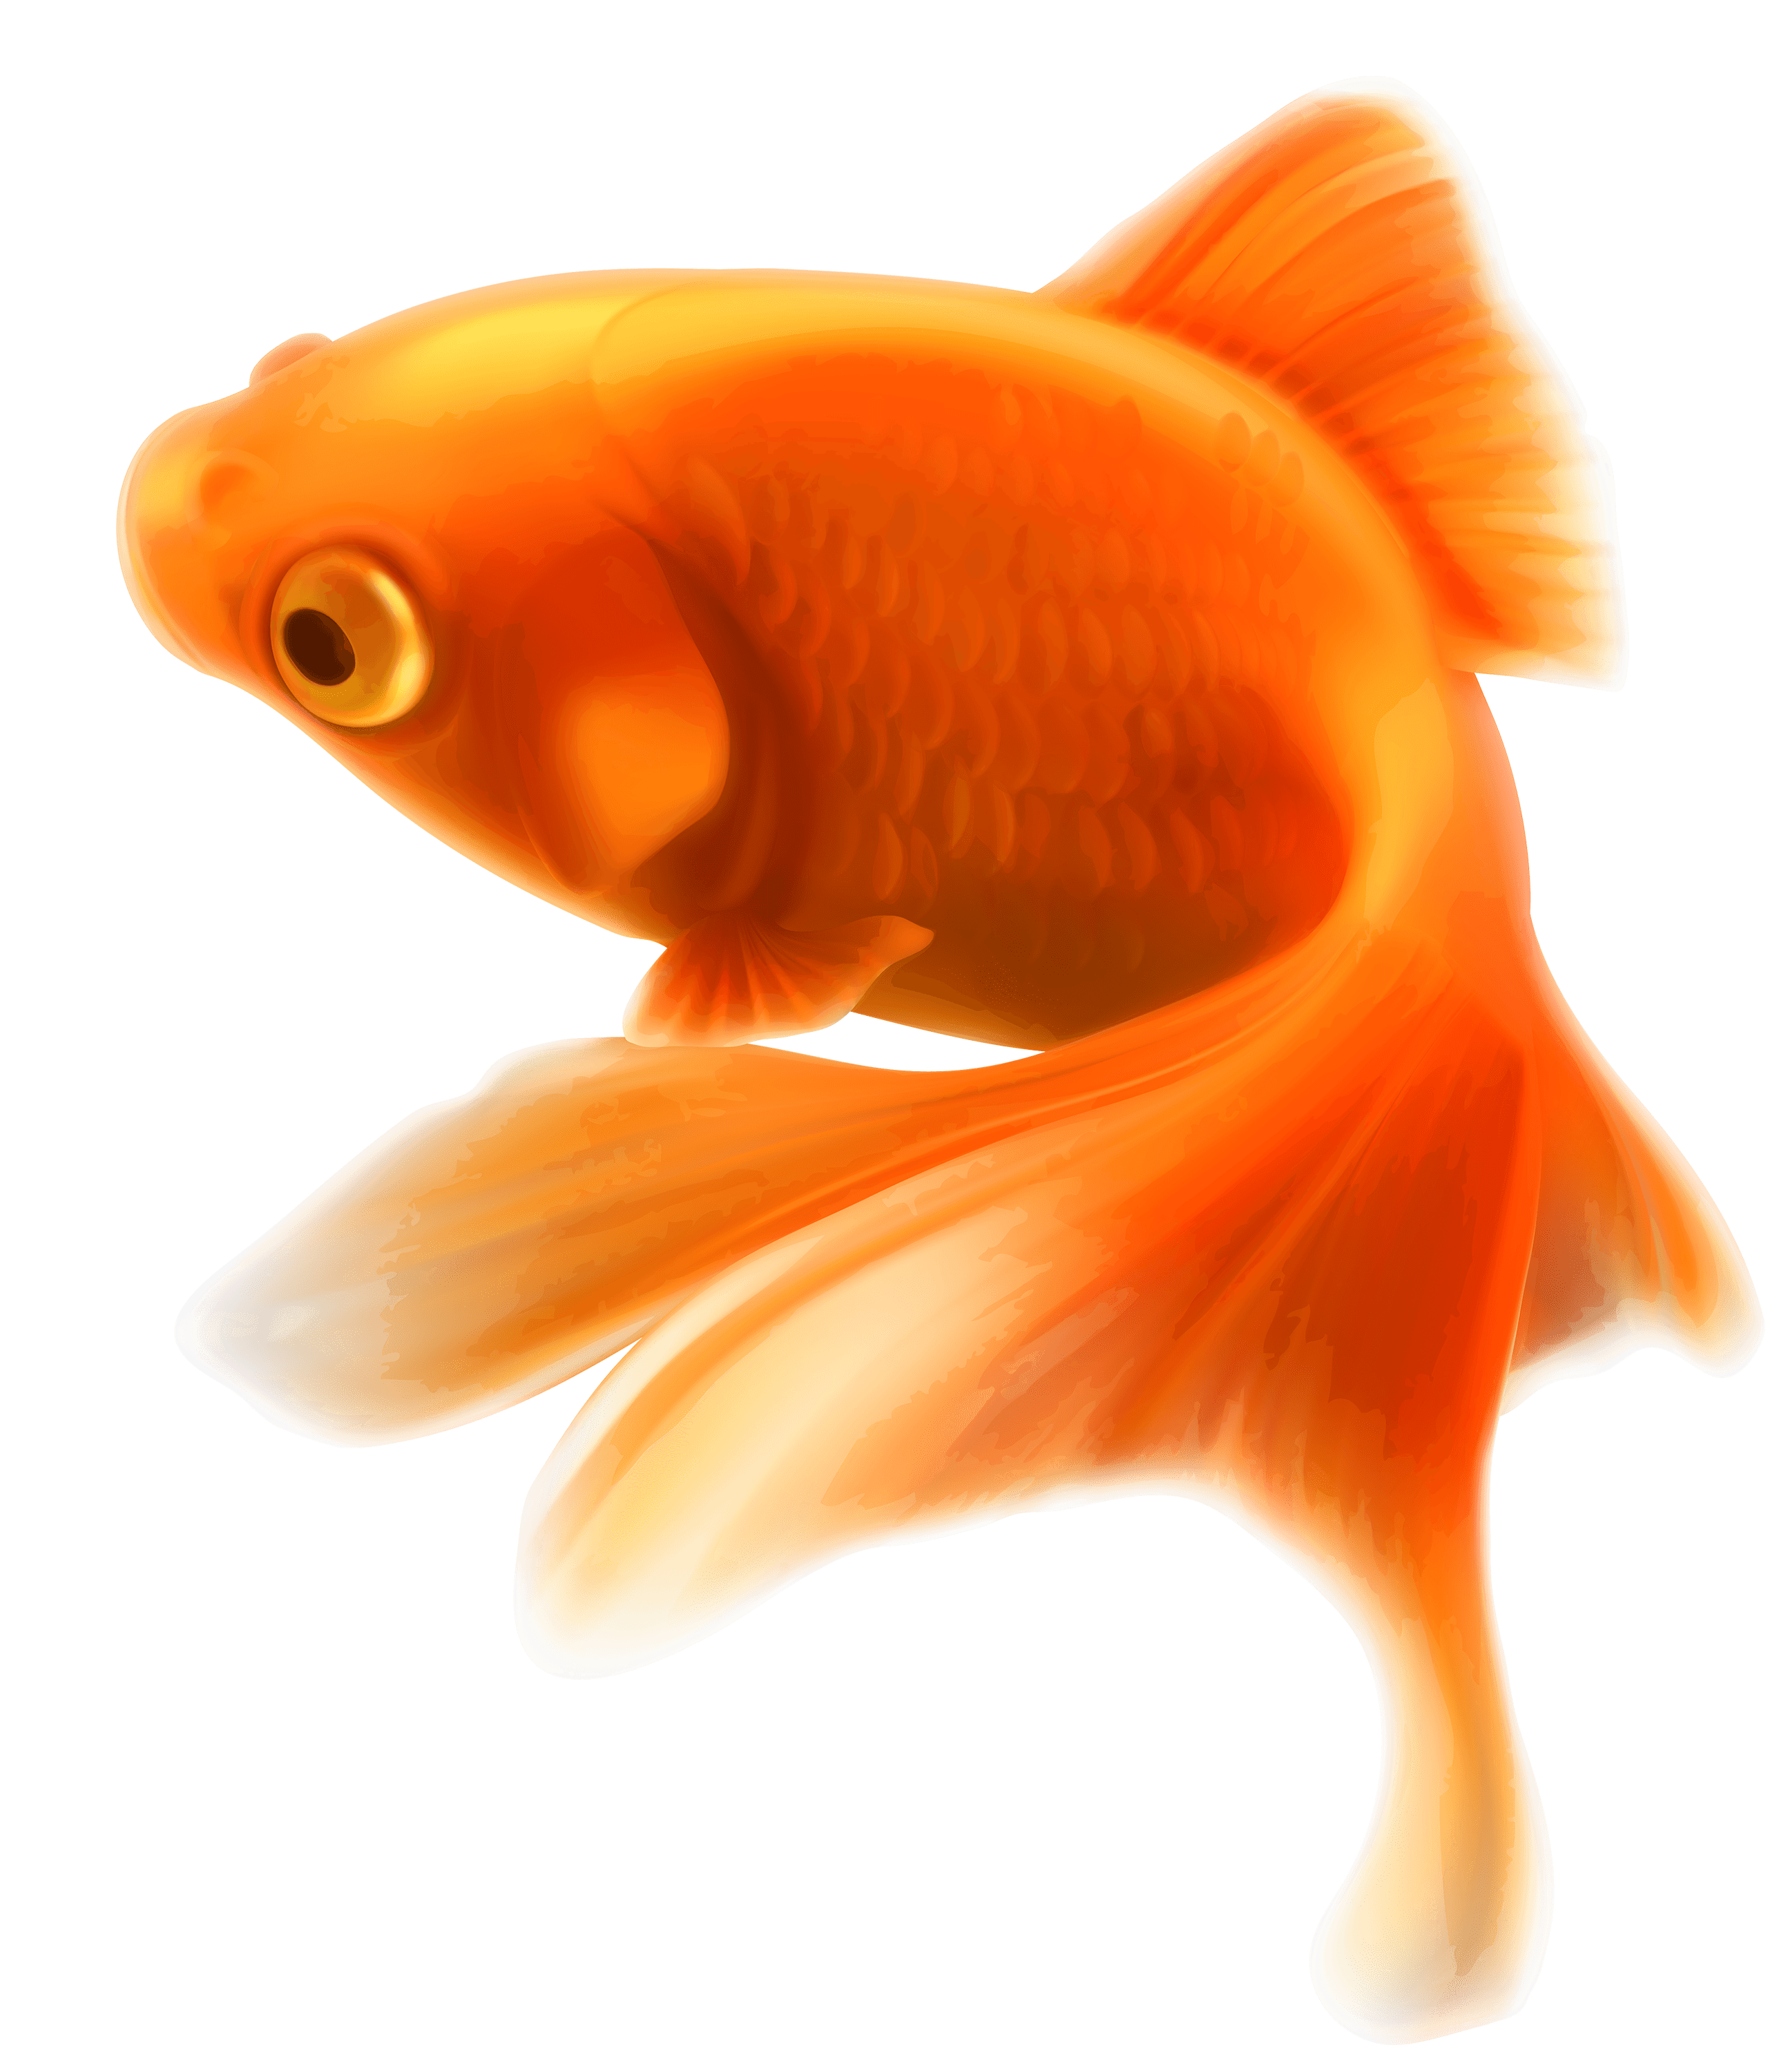 Fish tank transparent clipart graphic library library Gold Fish transparent PNG - StickPNG graphic library library